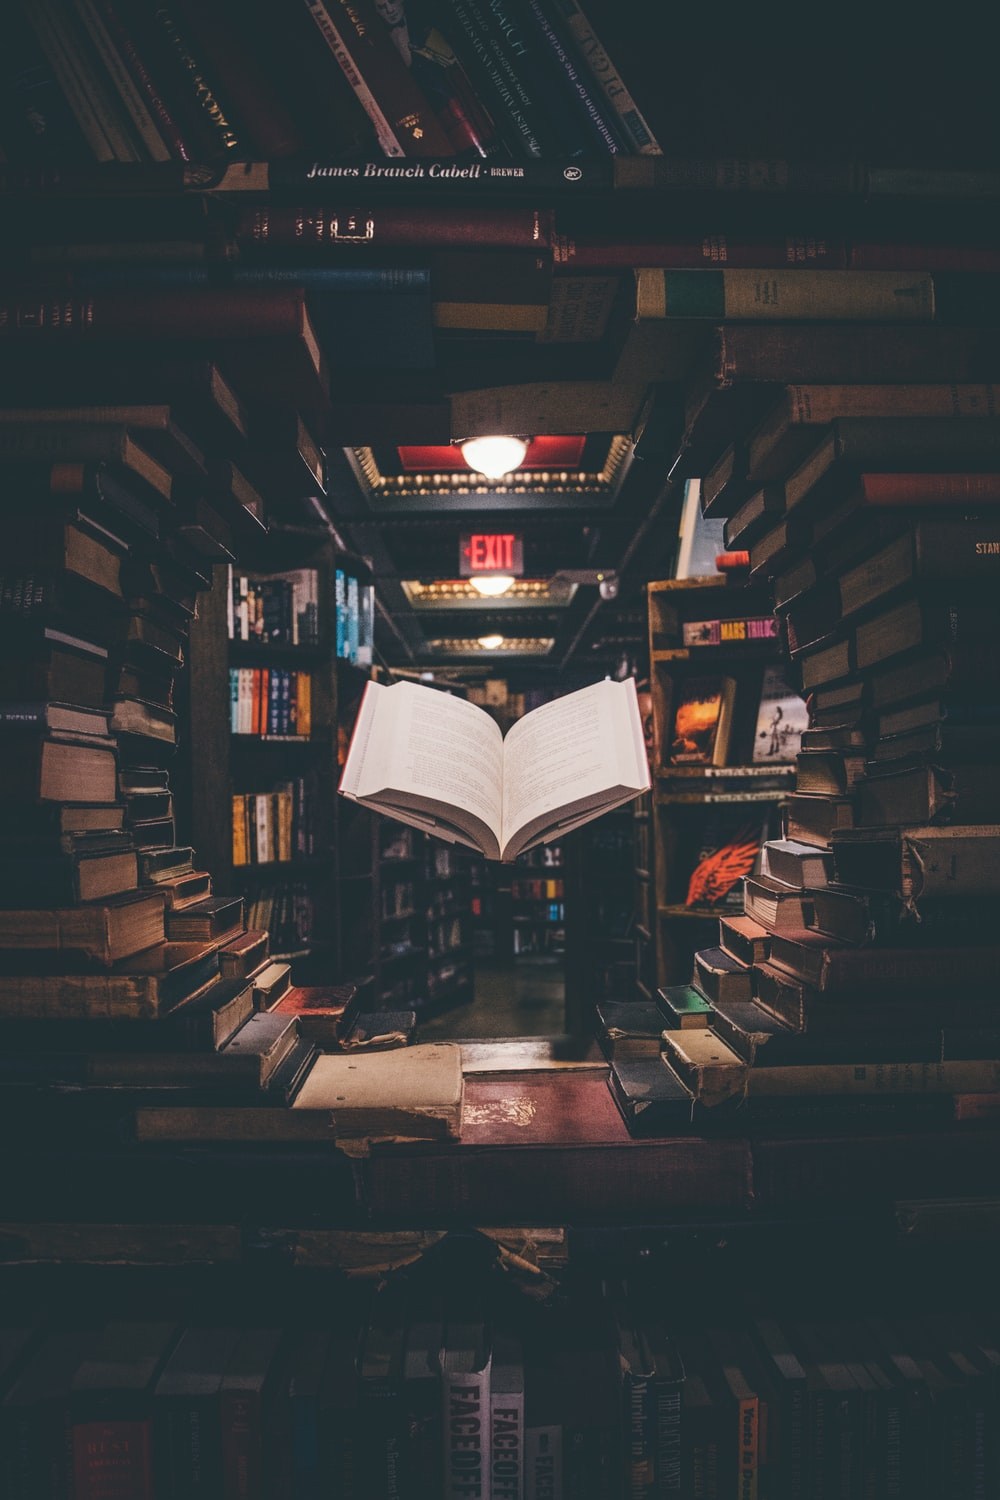 view of floating open book from stacked books in library